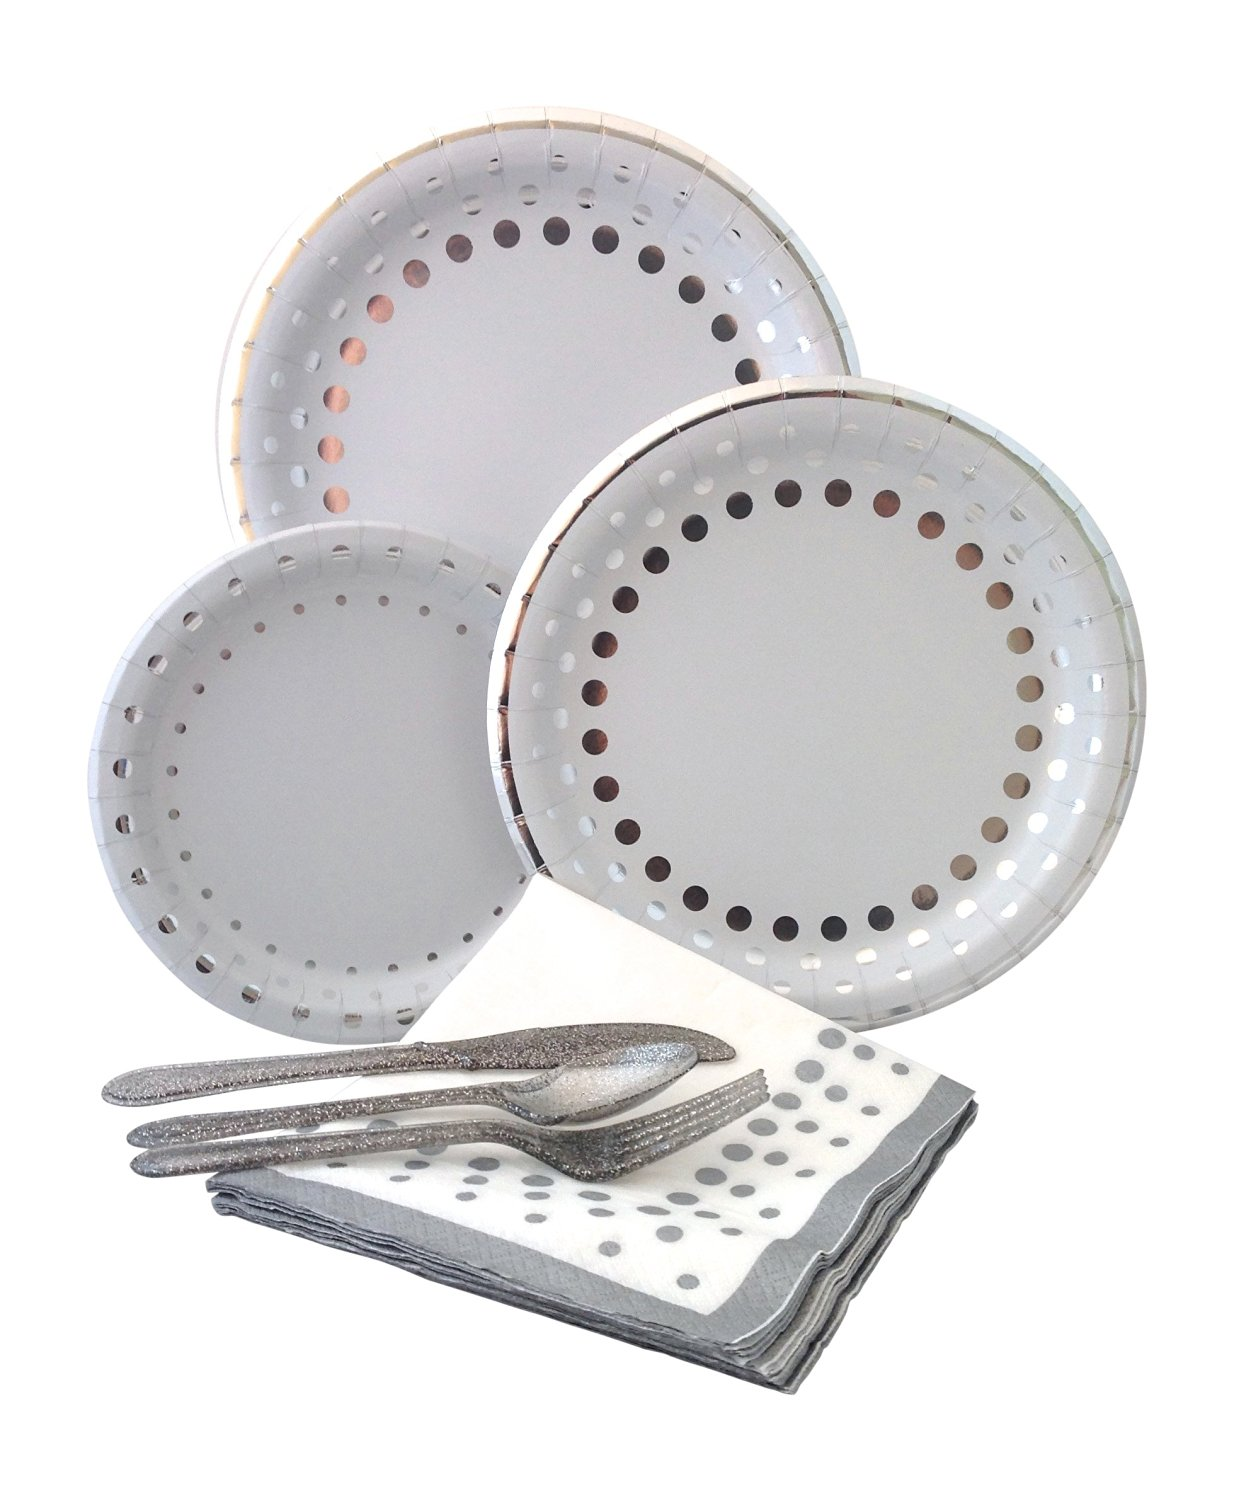 Bundle Includes Paper Plates Napkins \u0026 Silverware for 8  sc 1 st  Alibaba & Buy Silver Dot Party Supply Pack! Bundle Includes Paper Plates ...